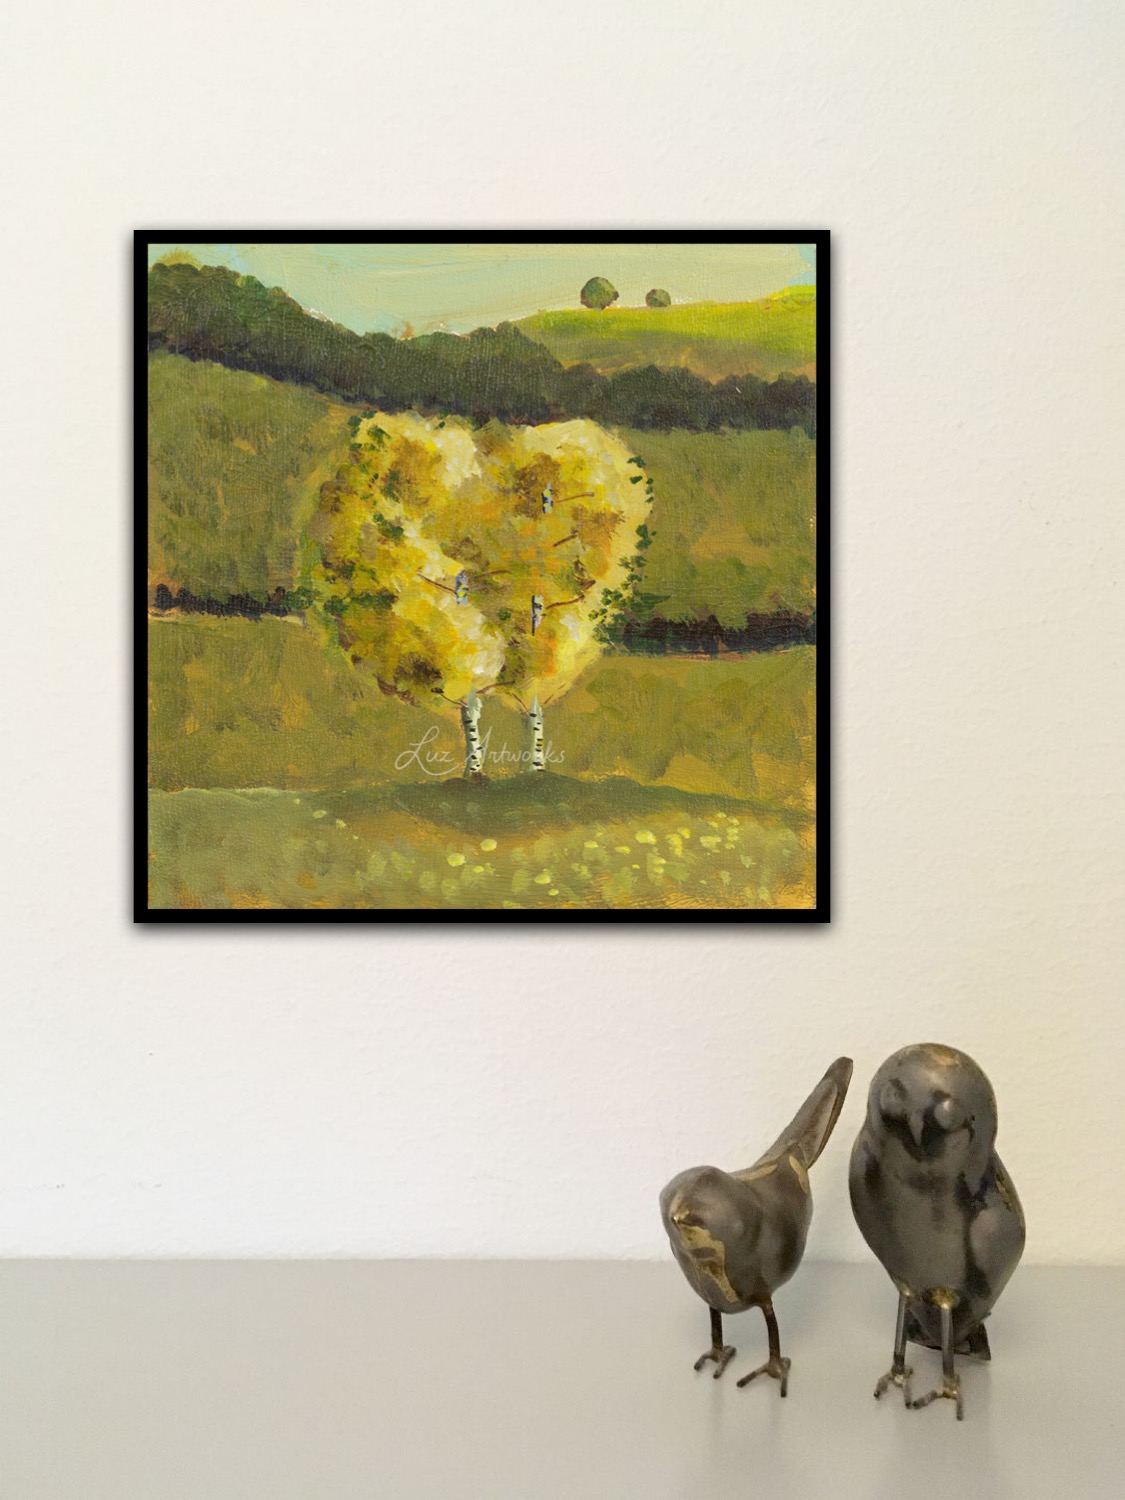 Painting Two Birch Trees by Luz Artworks - Marloes Bloedjes - On the wall